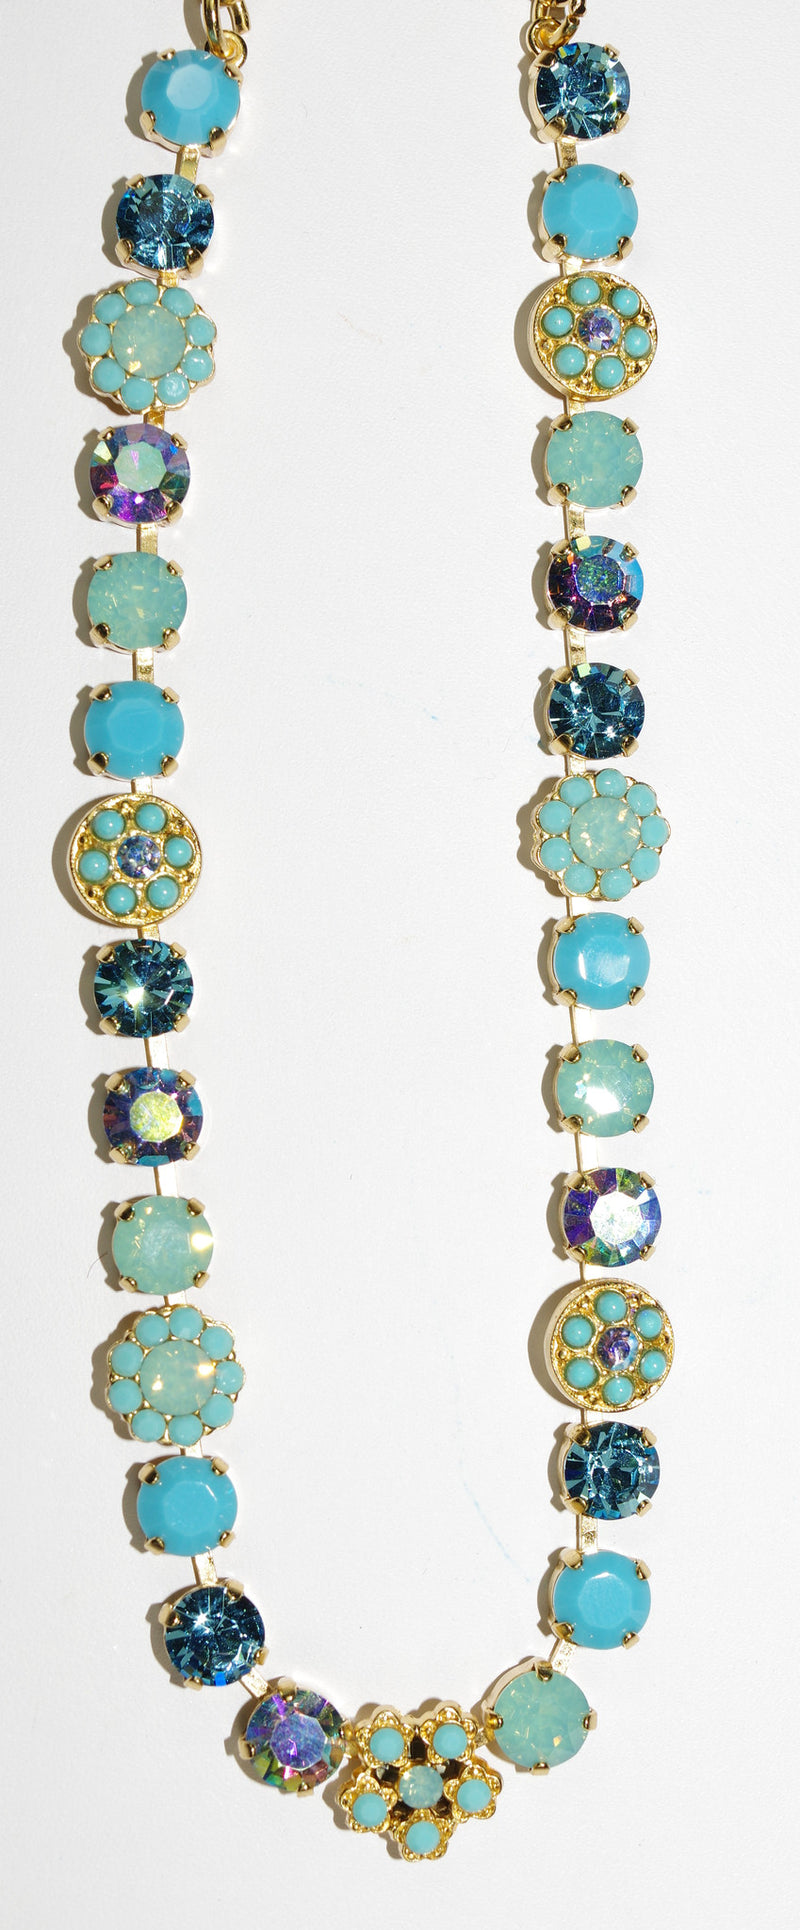 "MARIANA NECKLACE CINDY: blue, turq, pacific opal a/b stones in yellow gold setting, 18"" adjustable chain"